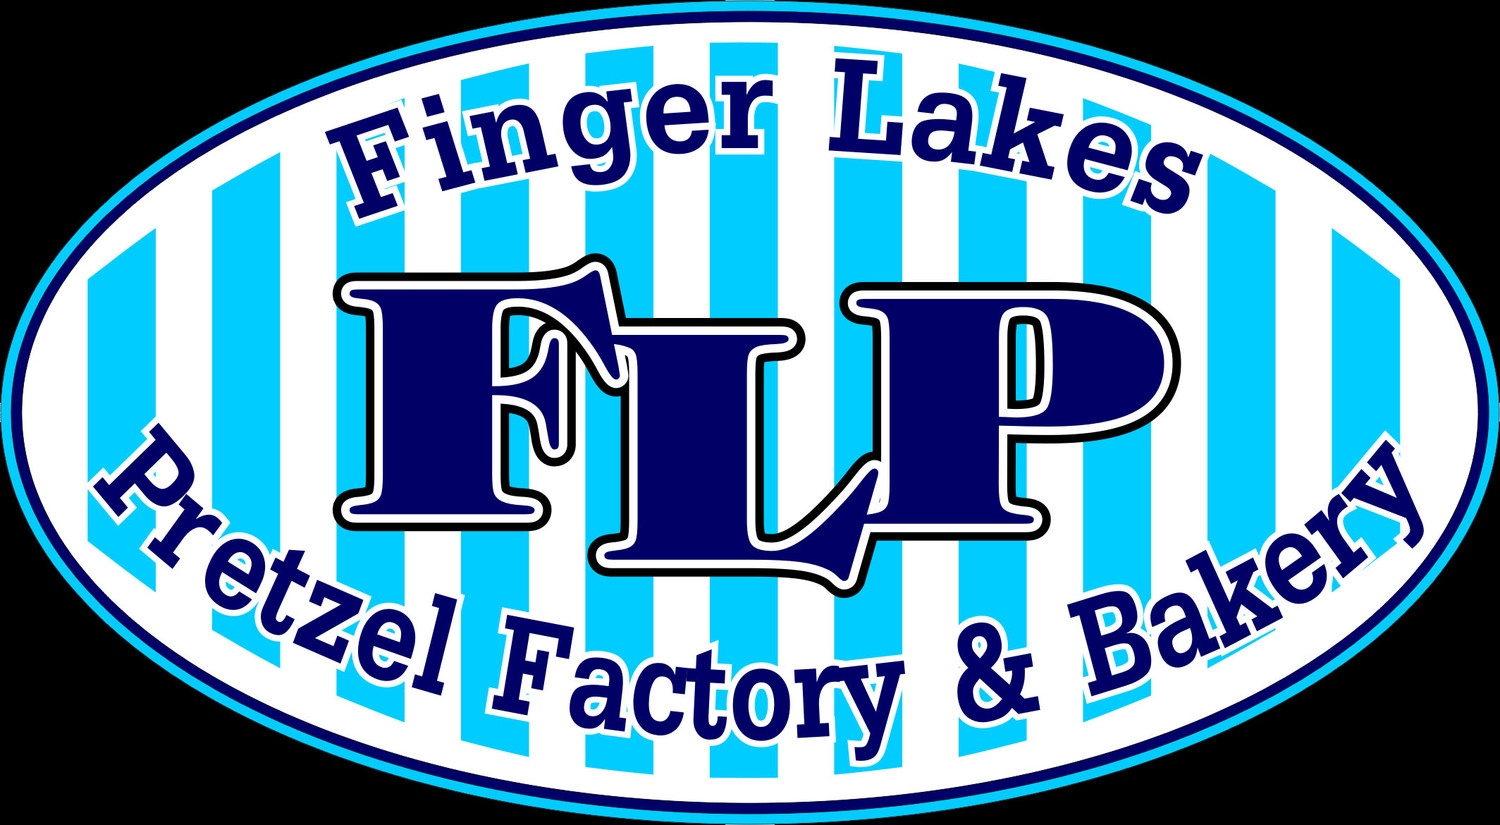 Finger Lakes Pretzel Factory and Bakery